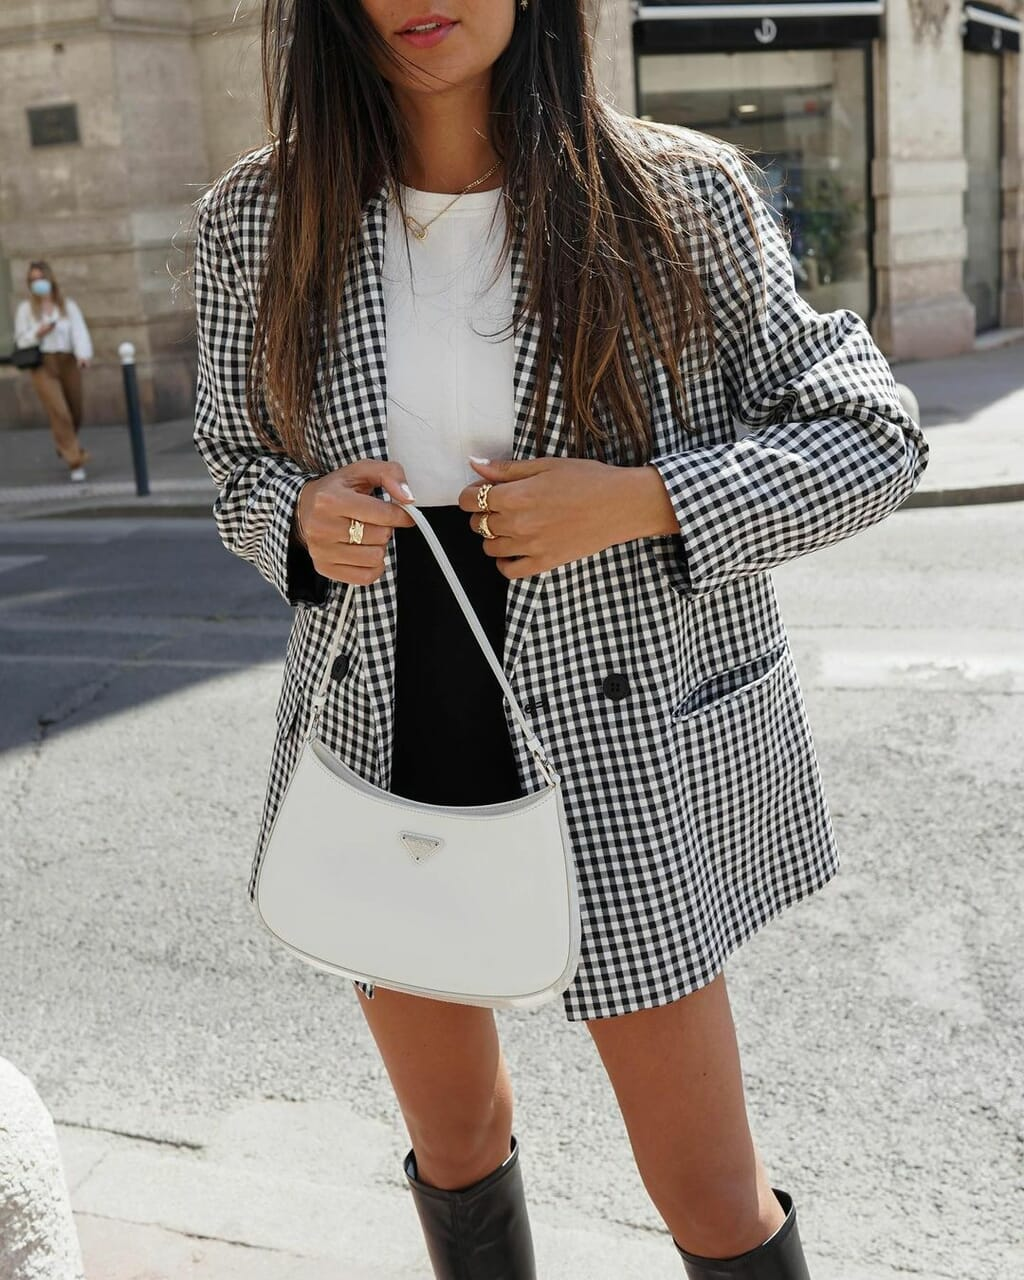 blogger, fashion, and look image